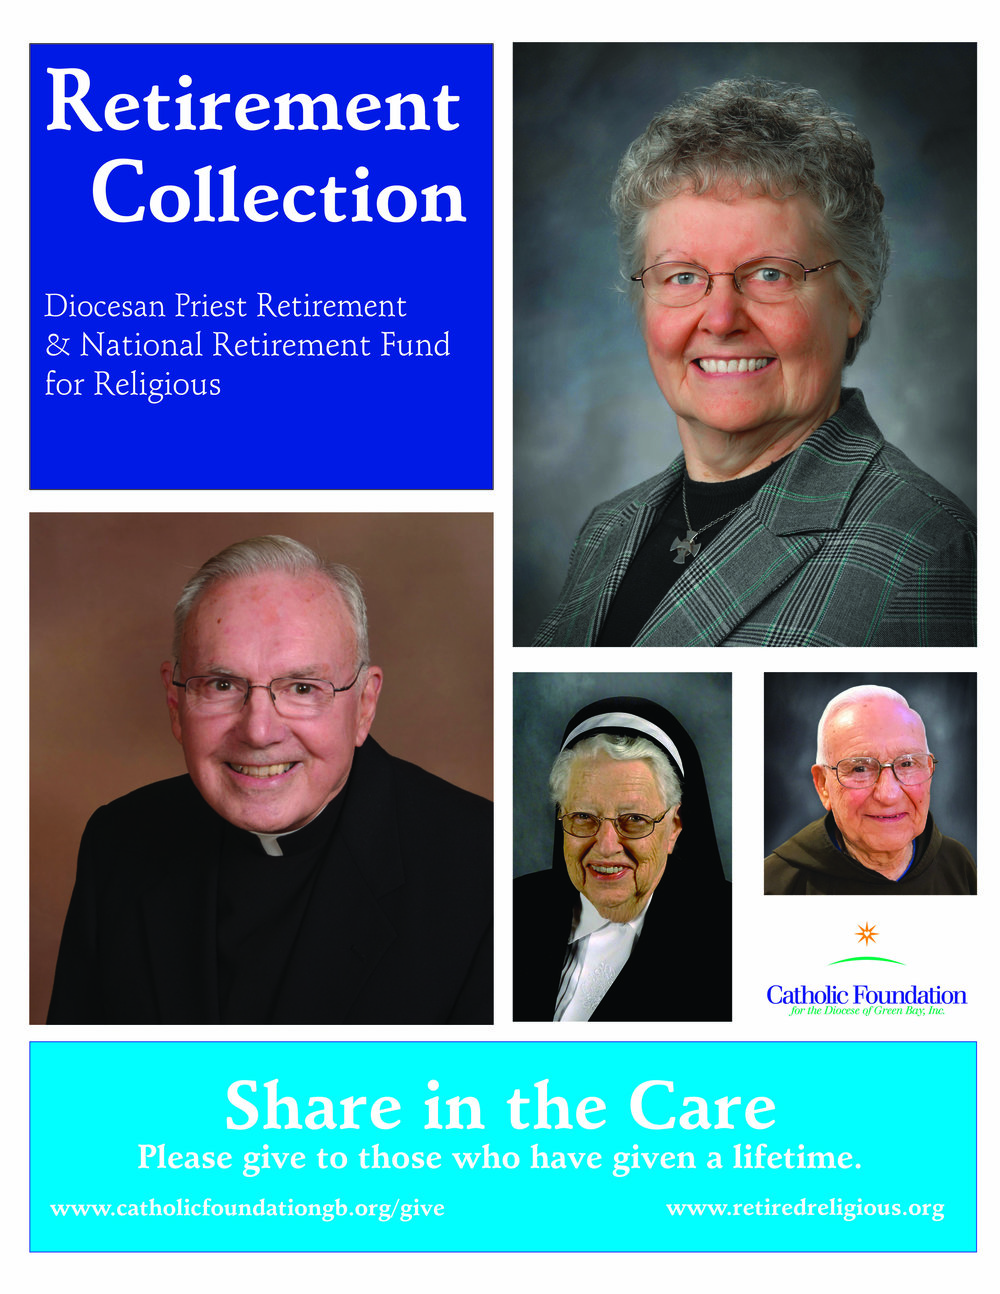 Retirement-Collection-Poster-8.5x11-FINAL.jpg